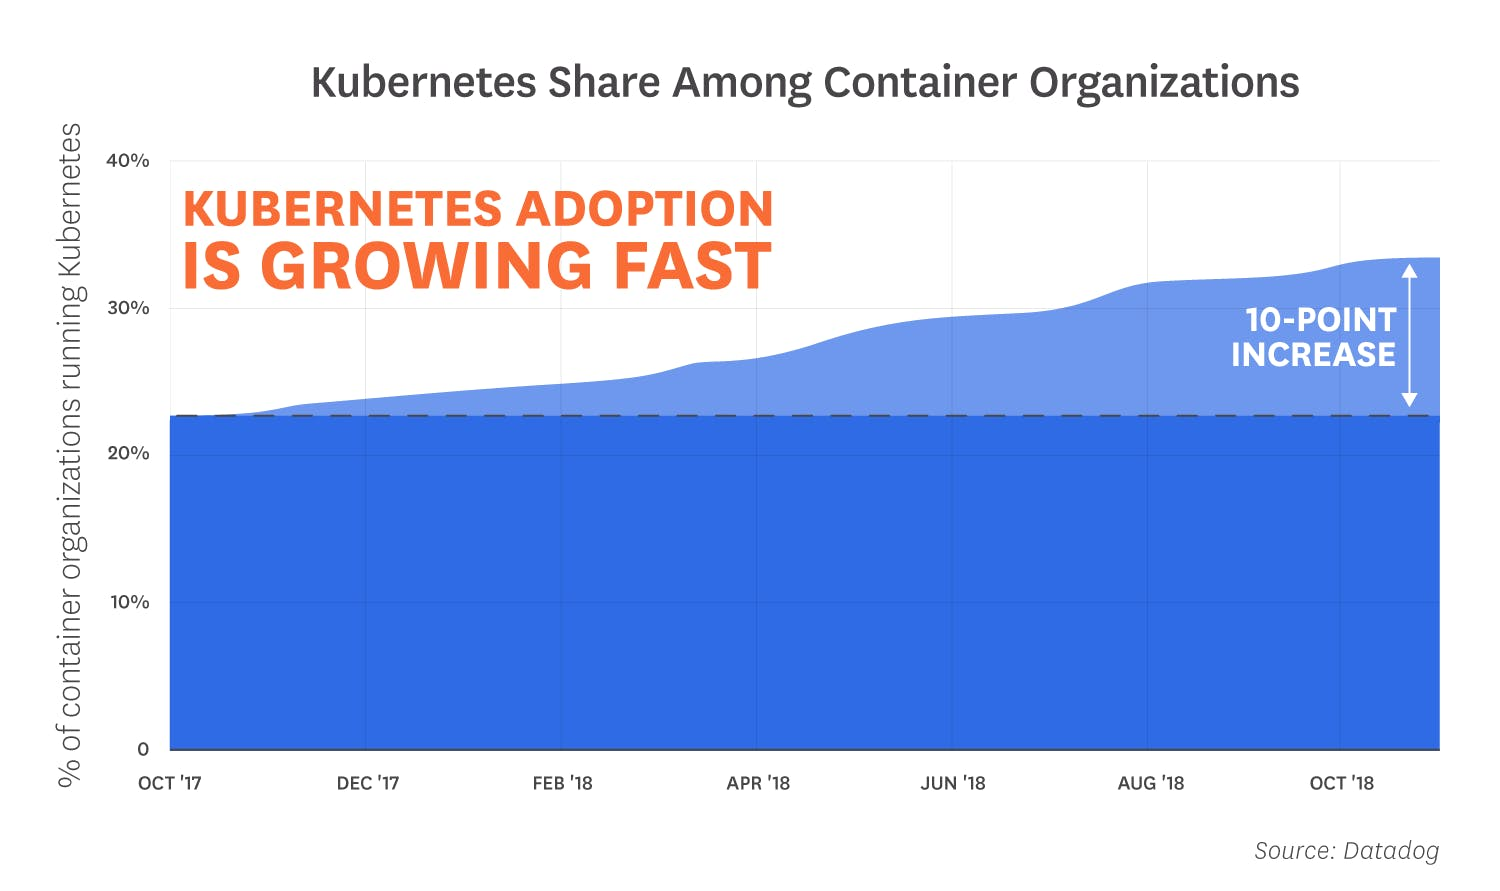 container-orchestration-2018/orchestration-2018-fact-2-v3